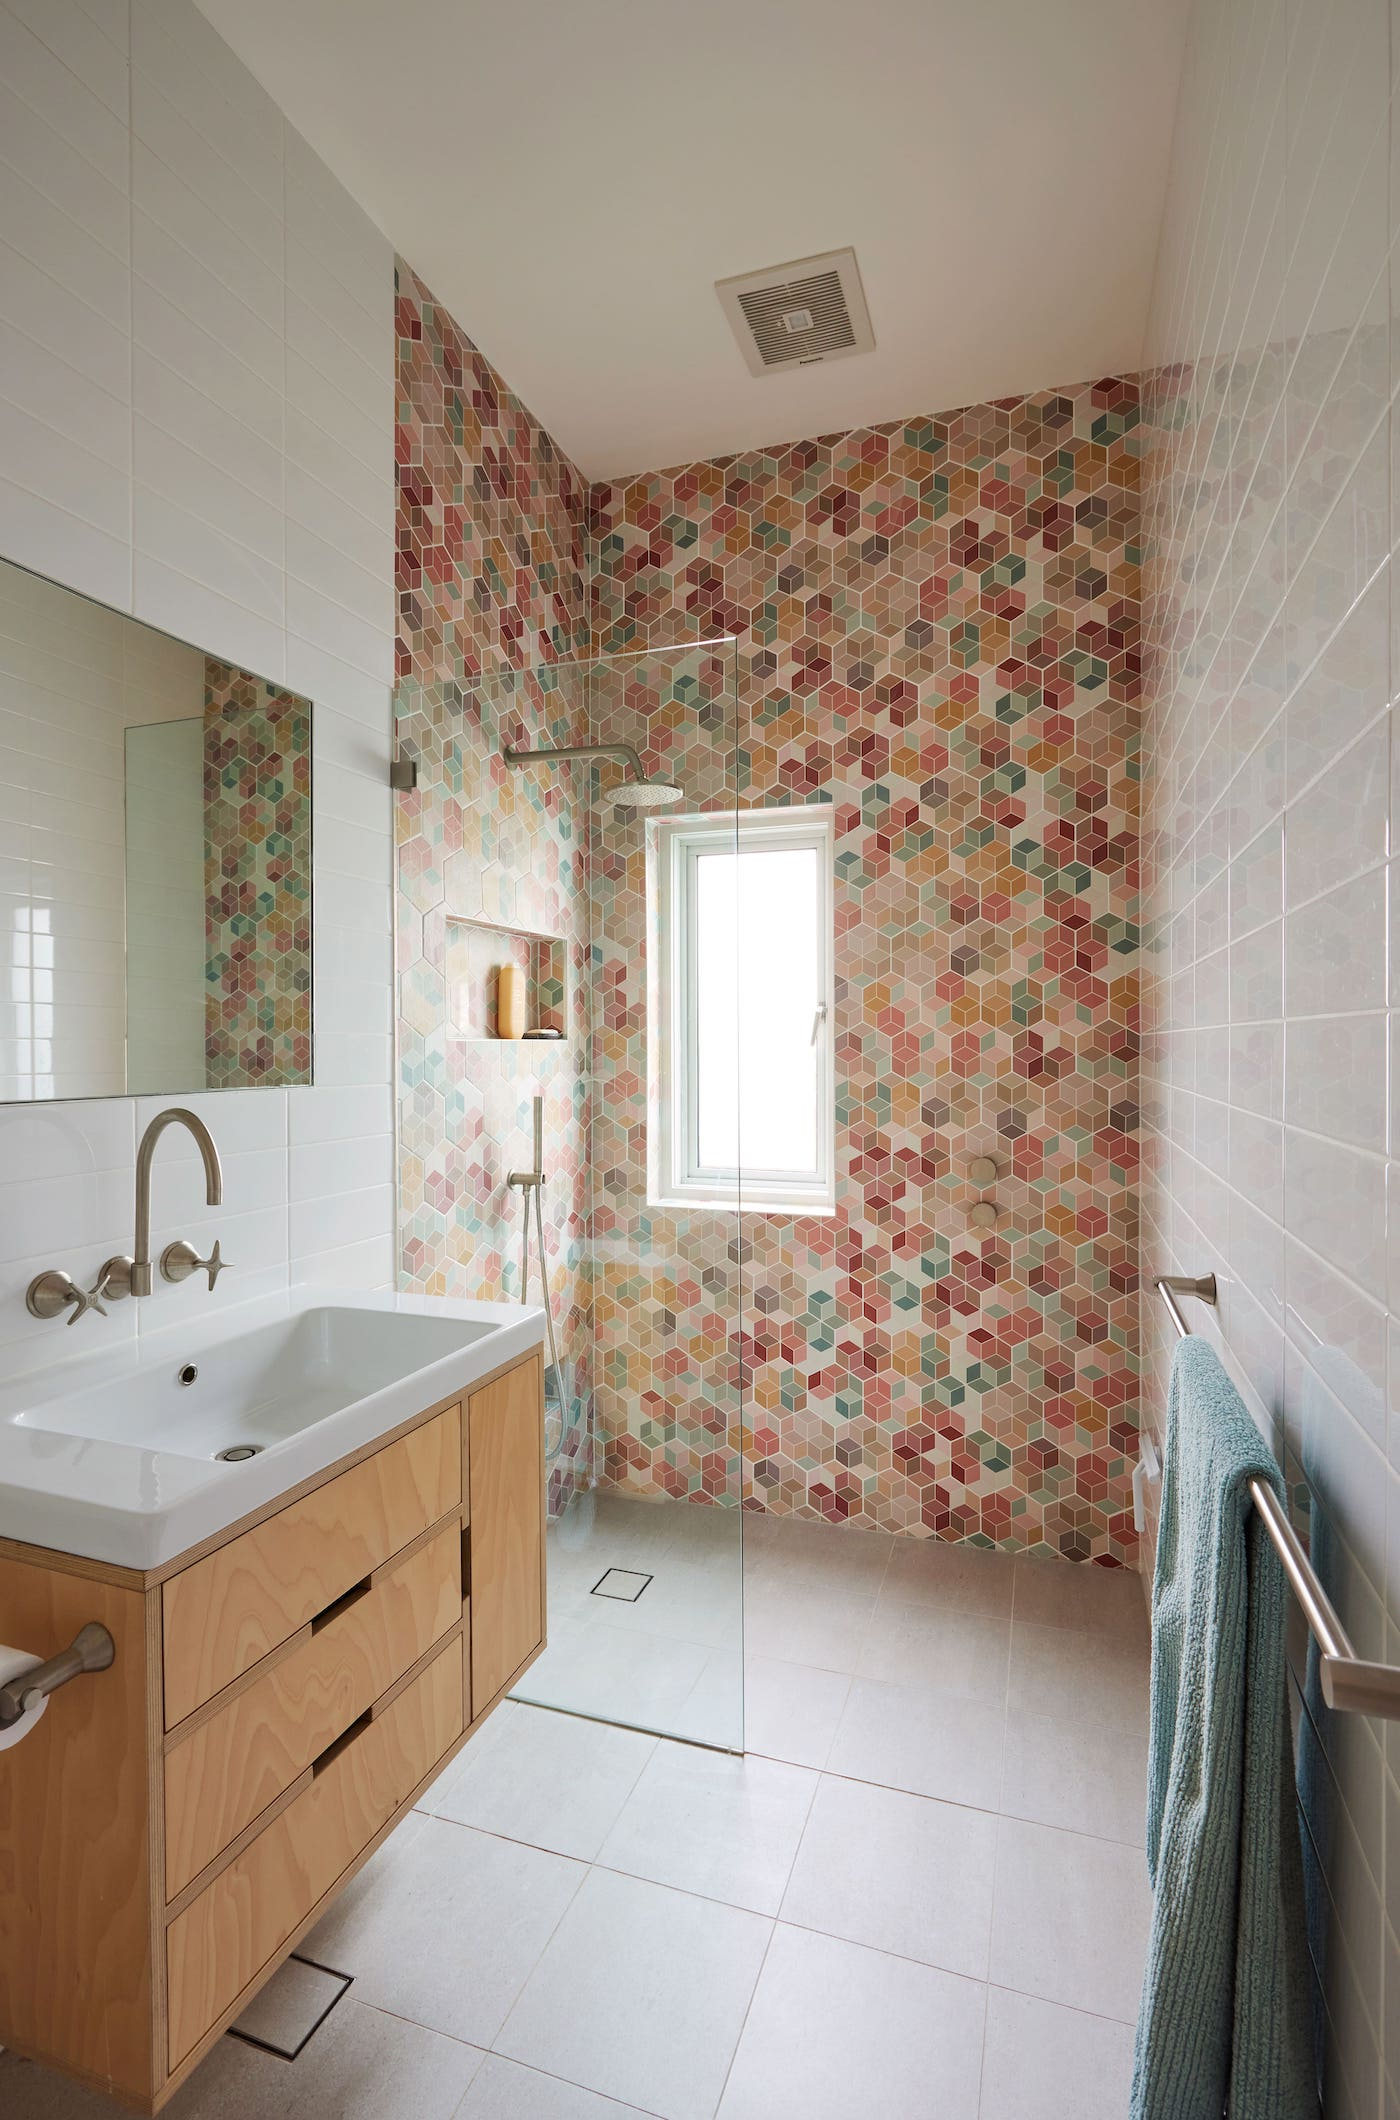 Timber bathroom vanity with bright shower tiles